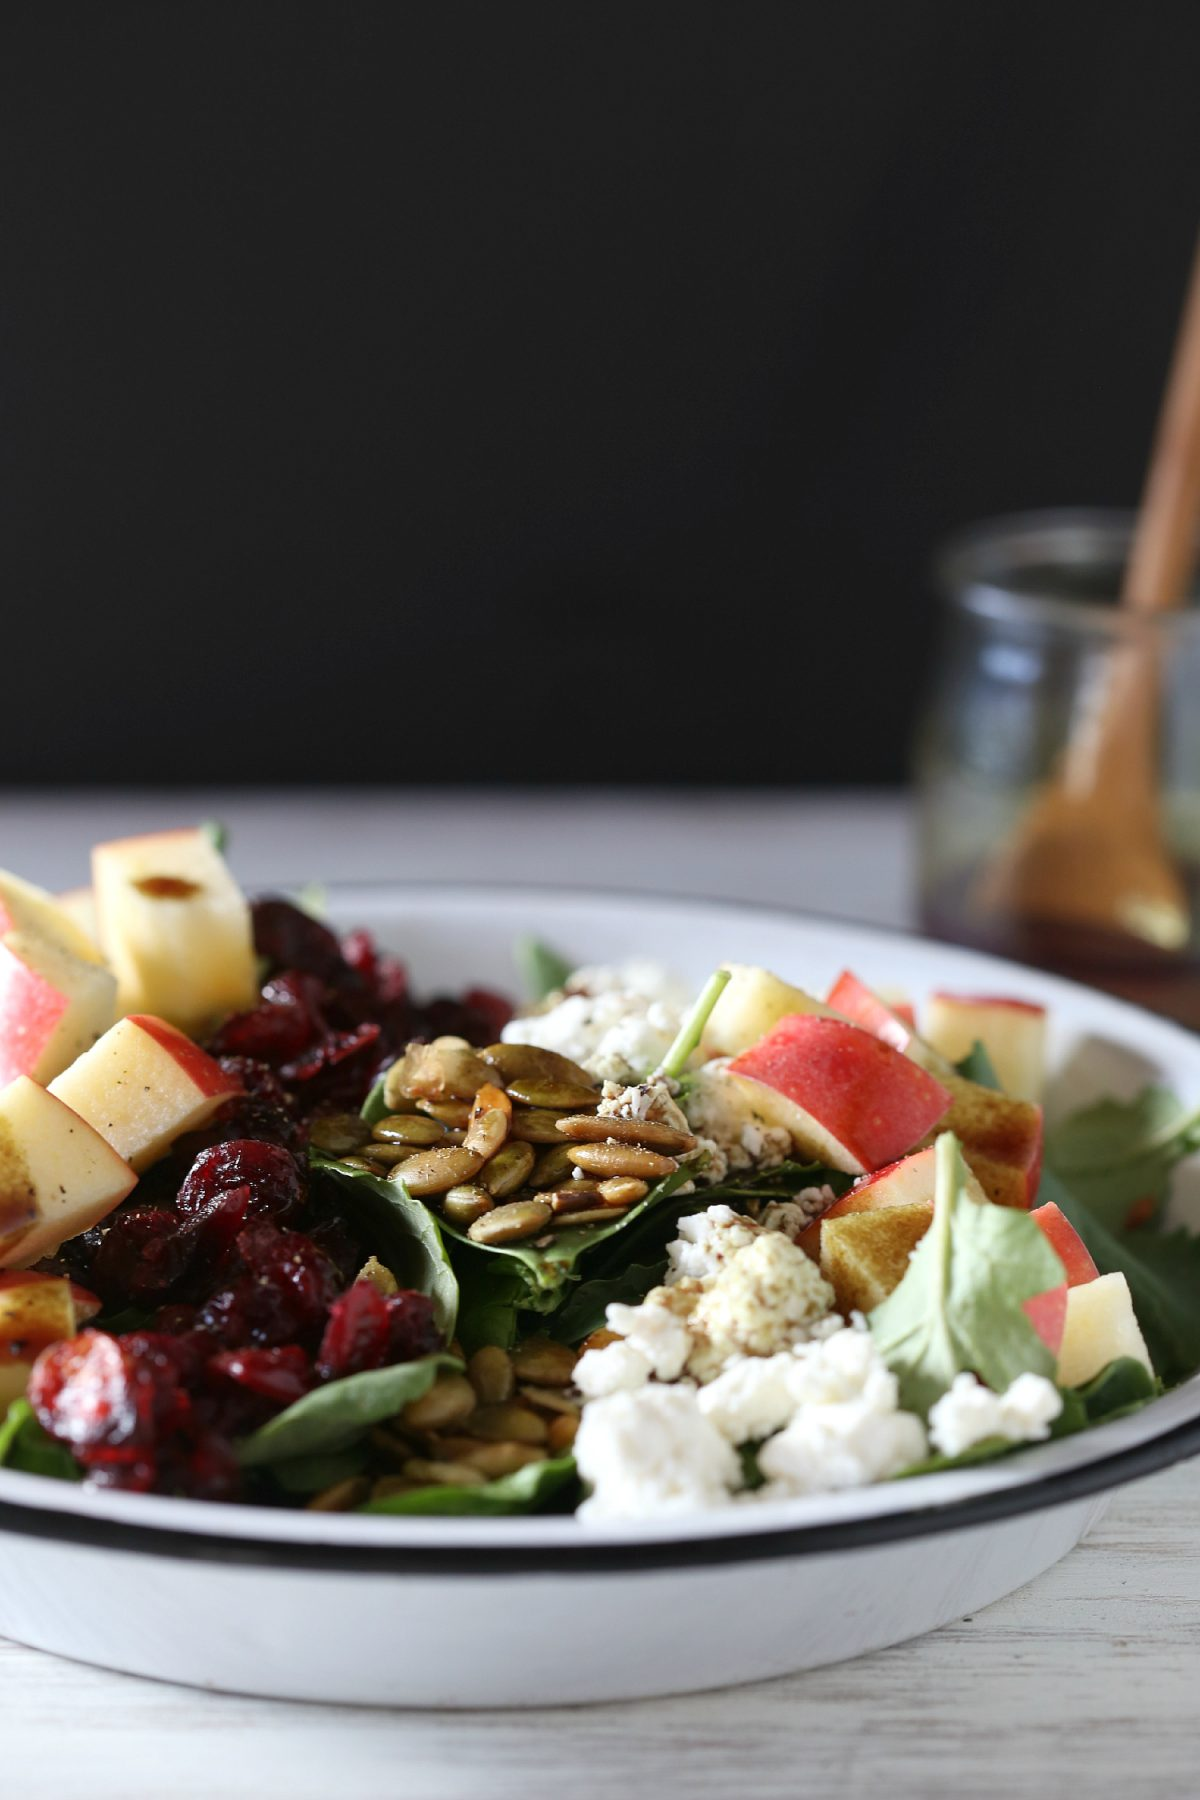 I can't wait to serve this autumn chopped kale and spinach salad with cranberries and goat cheese on Thanksgiving | Thanksgiving.com